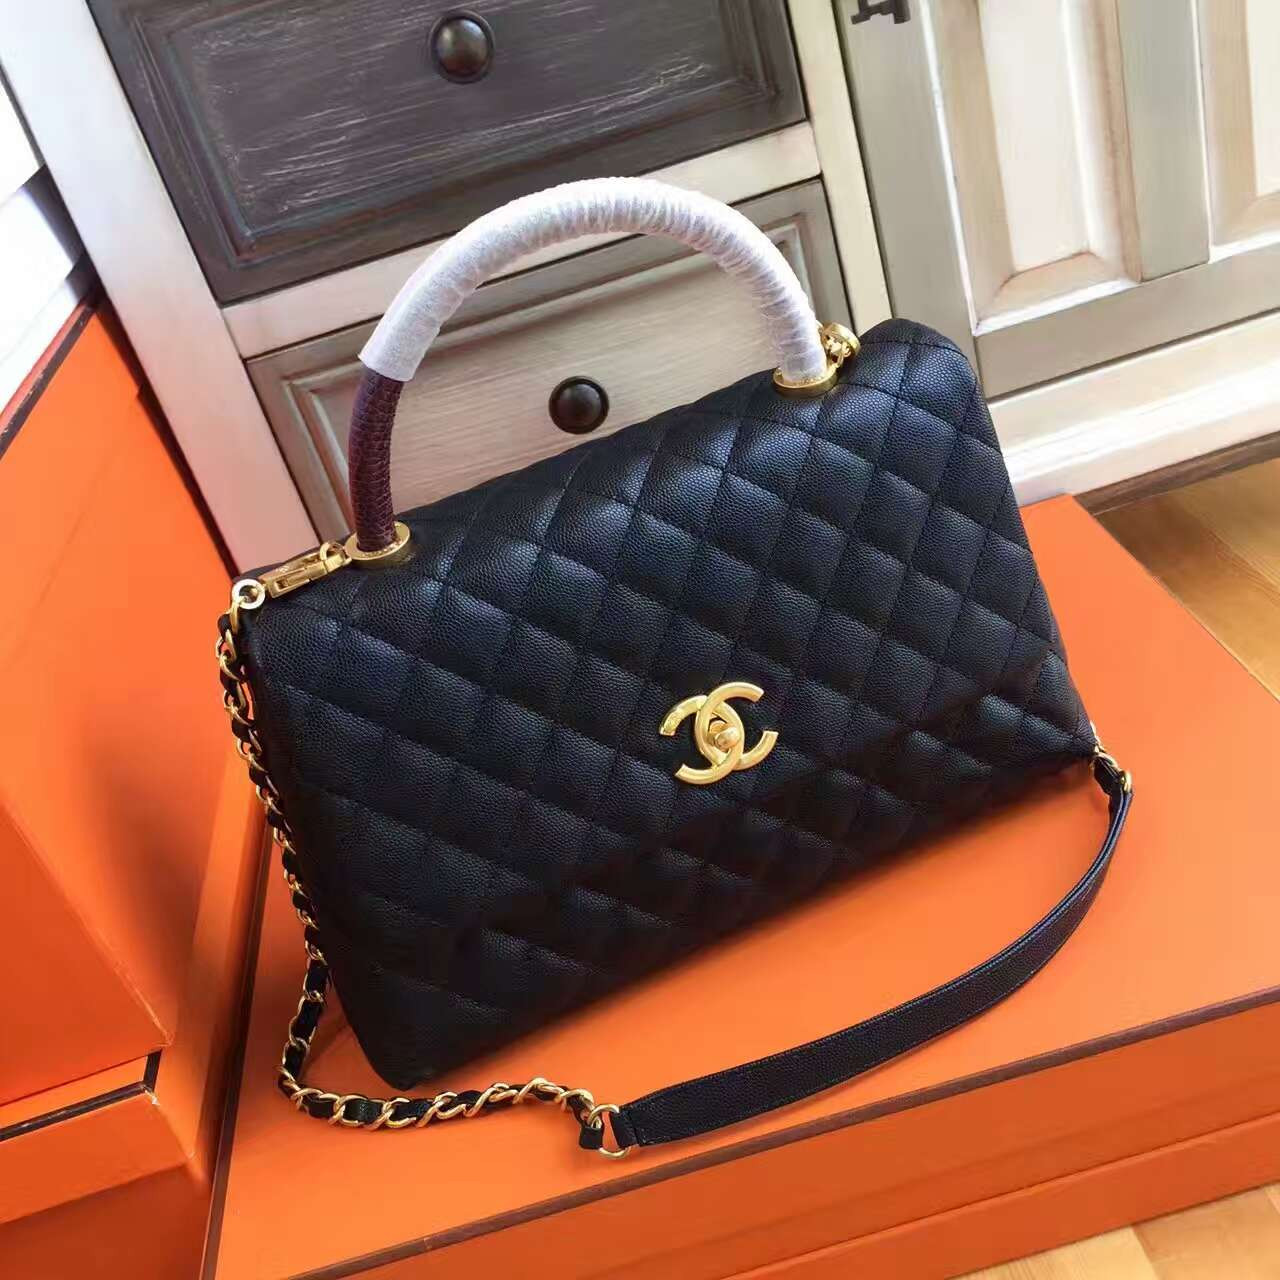 26fc5f5b8604 Chanel Coco Handle Bag with Lizard Handle Style Code A92992 - Bella ...